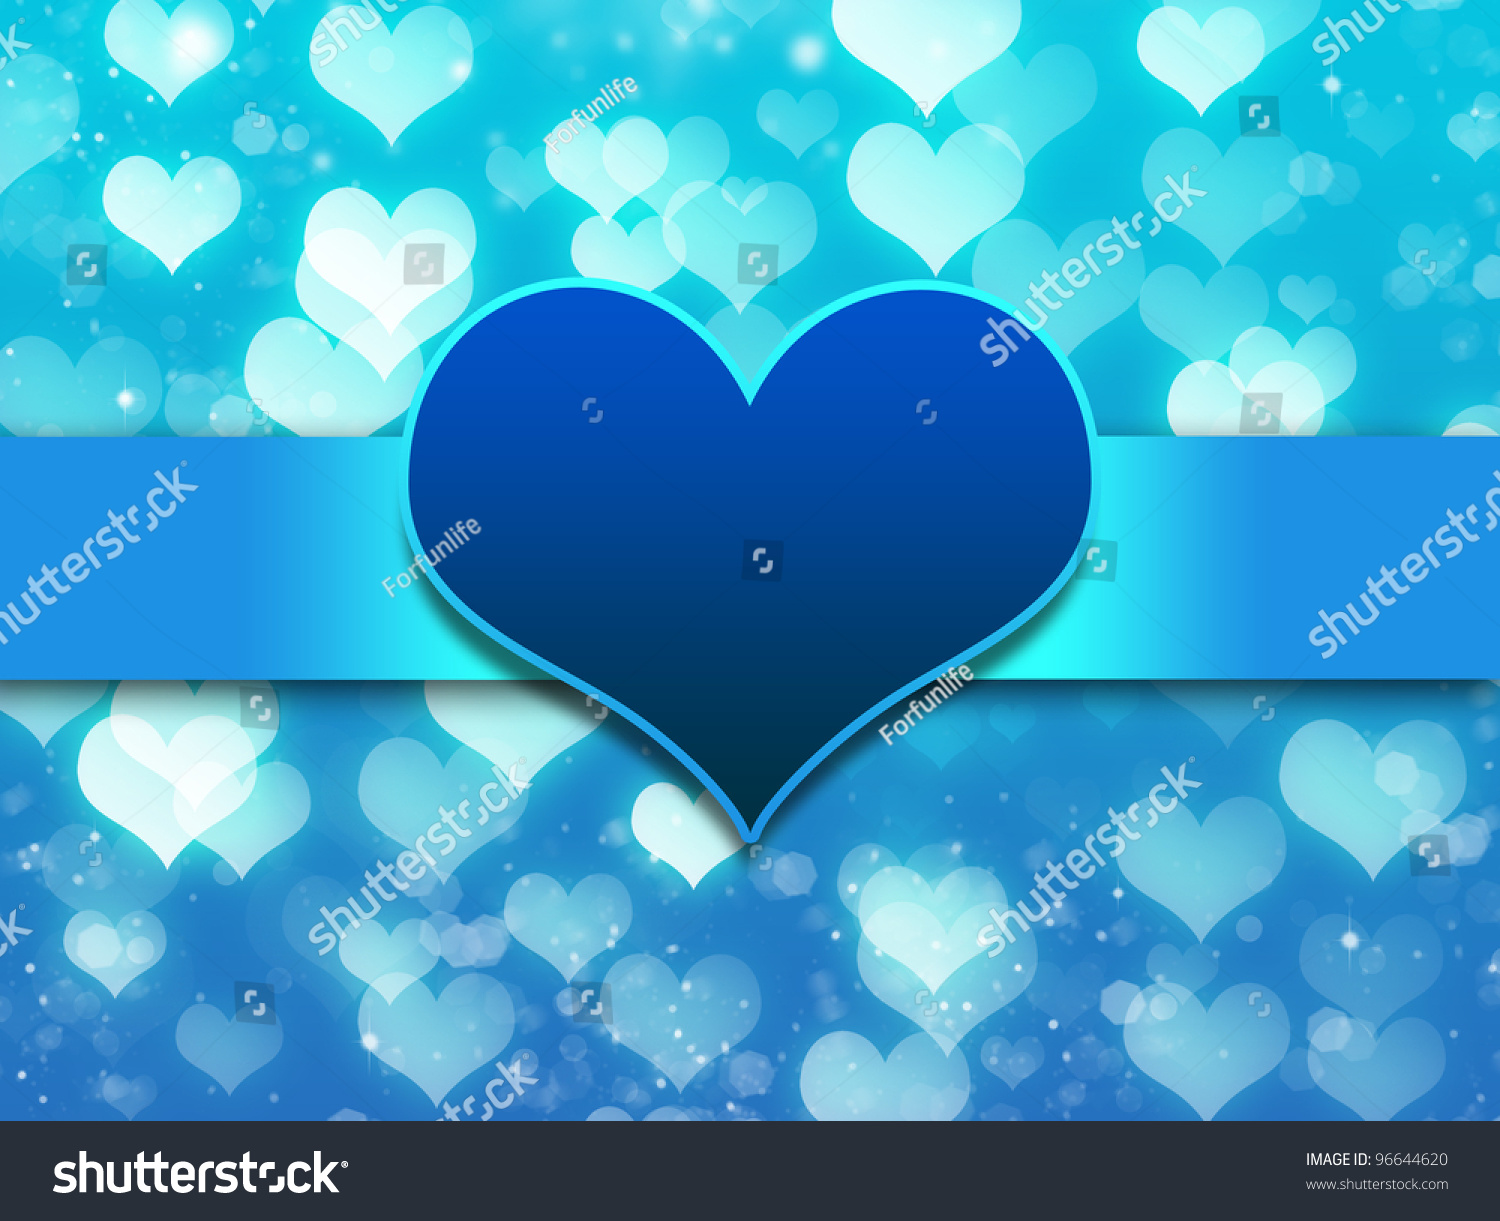 dating site blue heart Online dating with telegraph dating, find love online  would like to congratulate you on this site for its ease of use thank you eleanor, 2017-11-09.